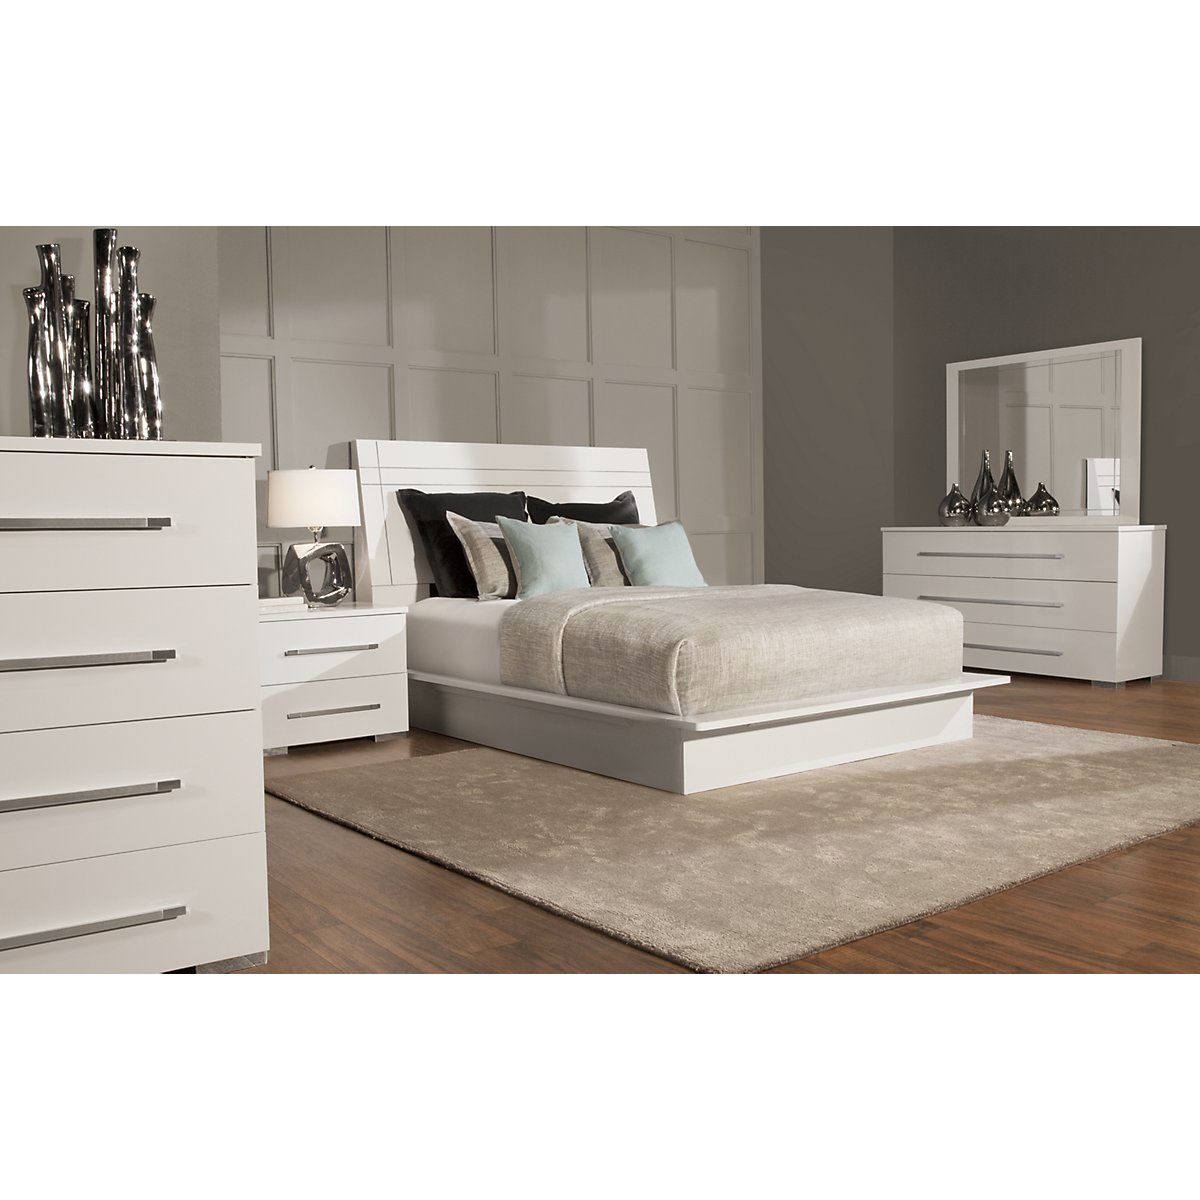 dimora3 white wood platform bedroom - Platform Bedroom Sets